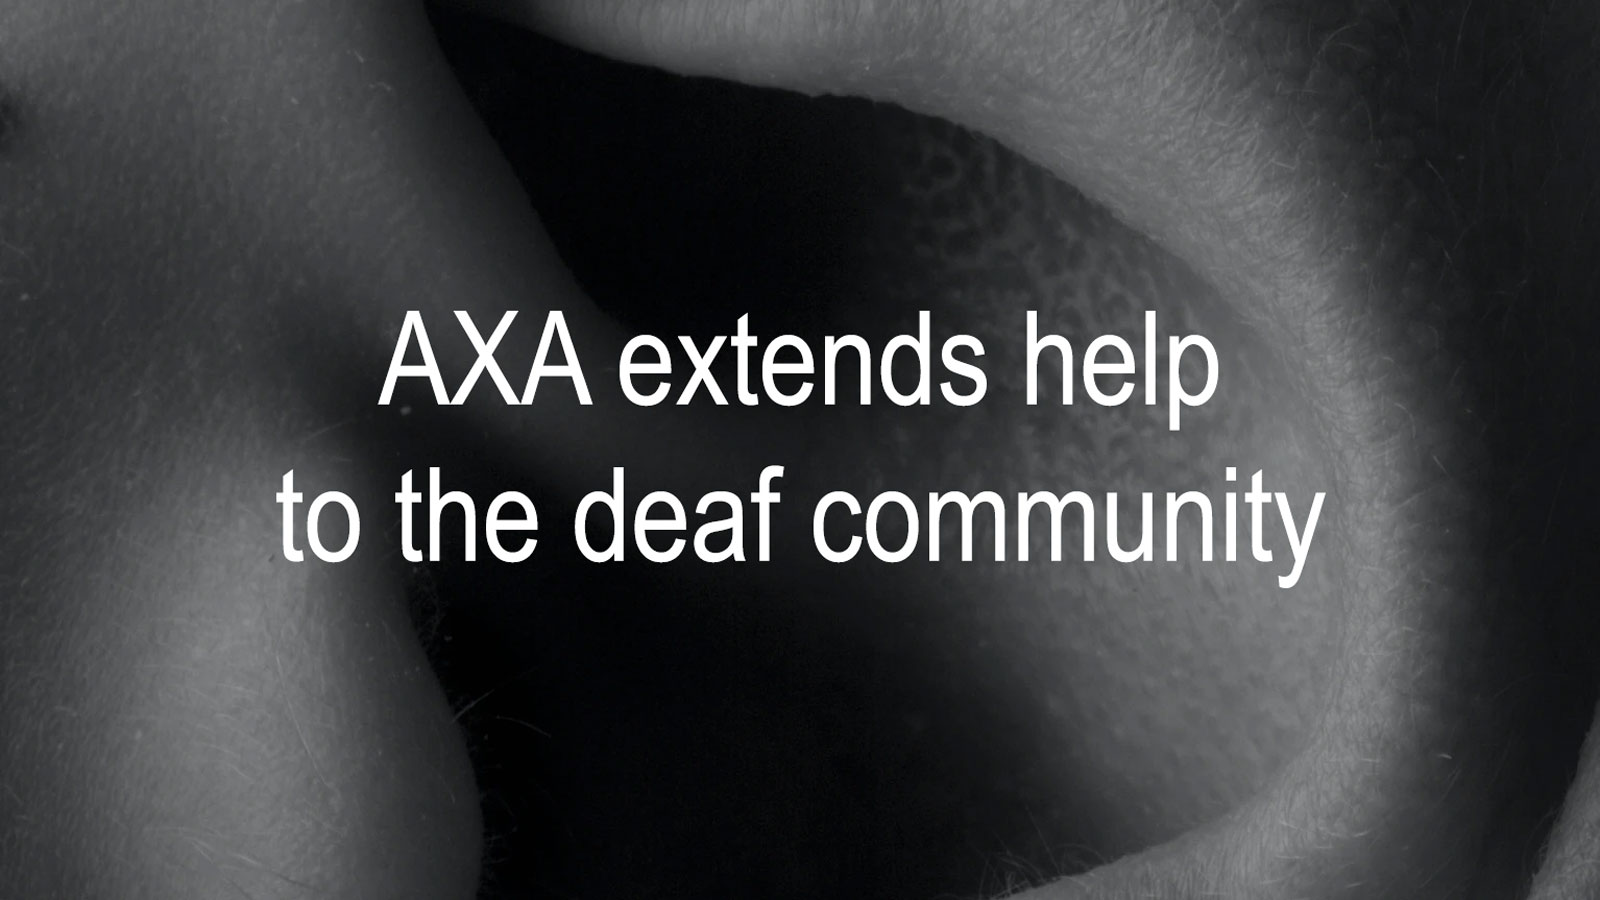 AXA extends help to the deaf community amidst COVID-19